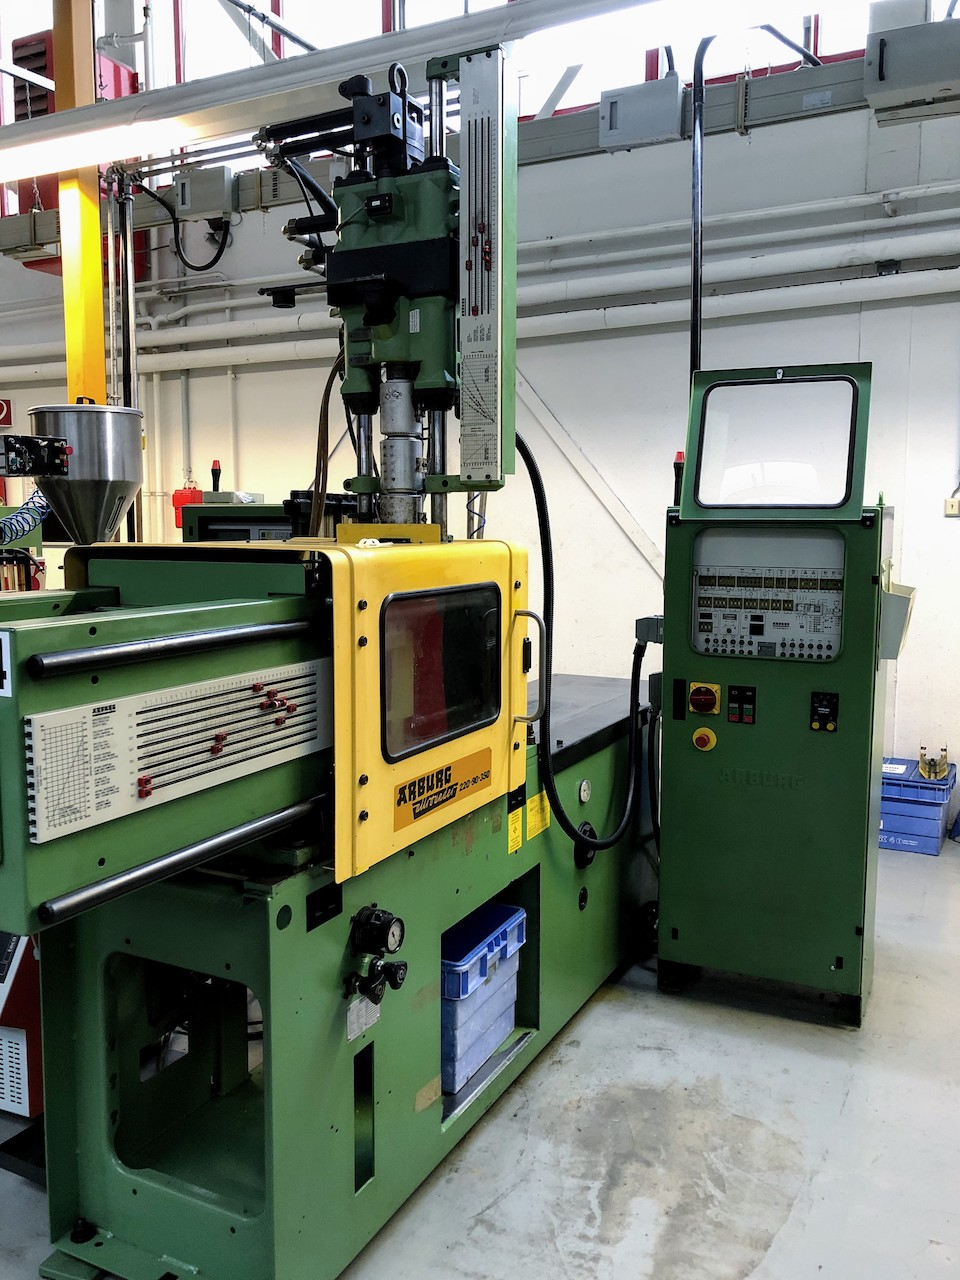 Injection molding machine with vertical injection unit